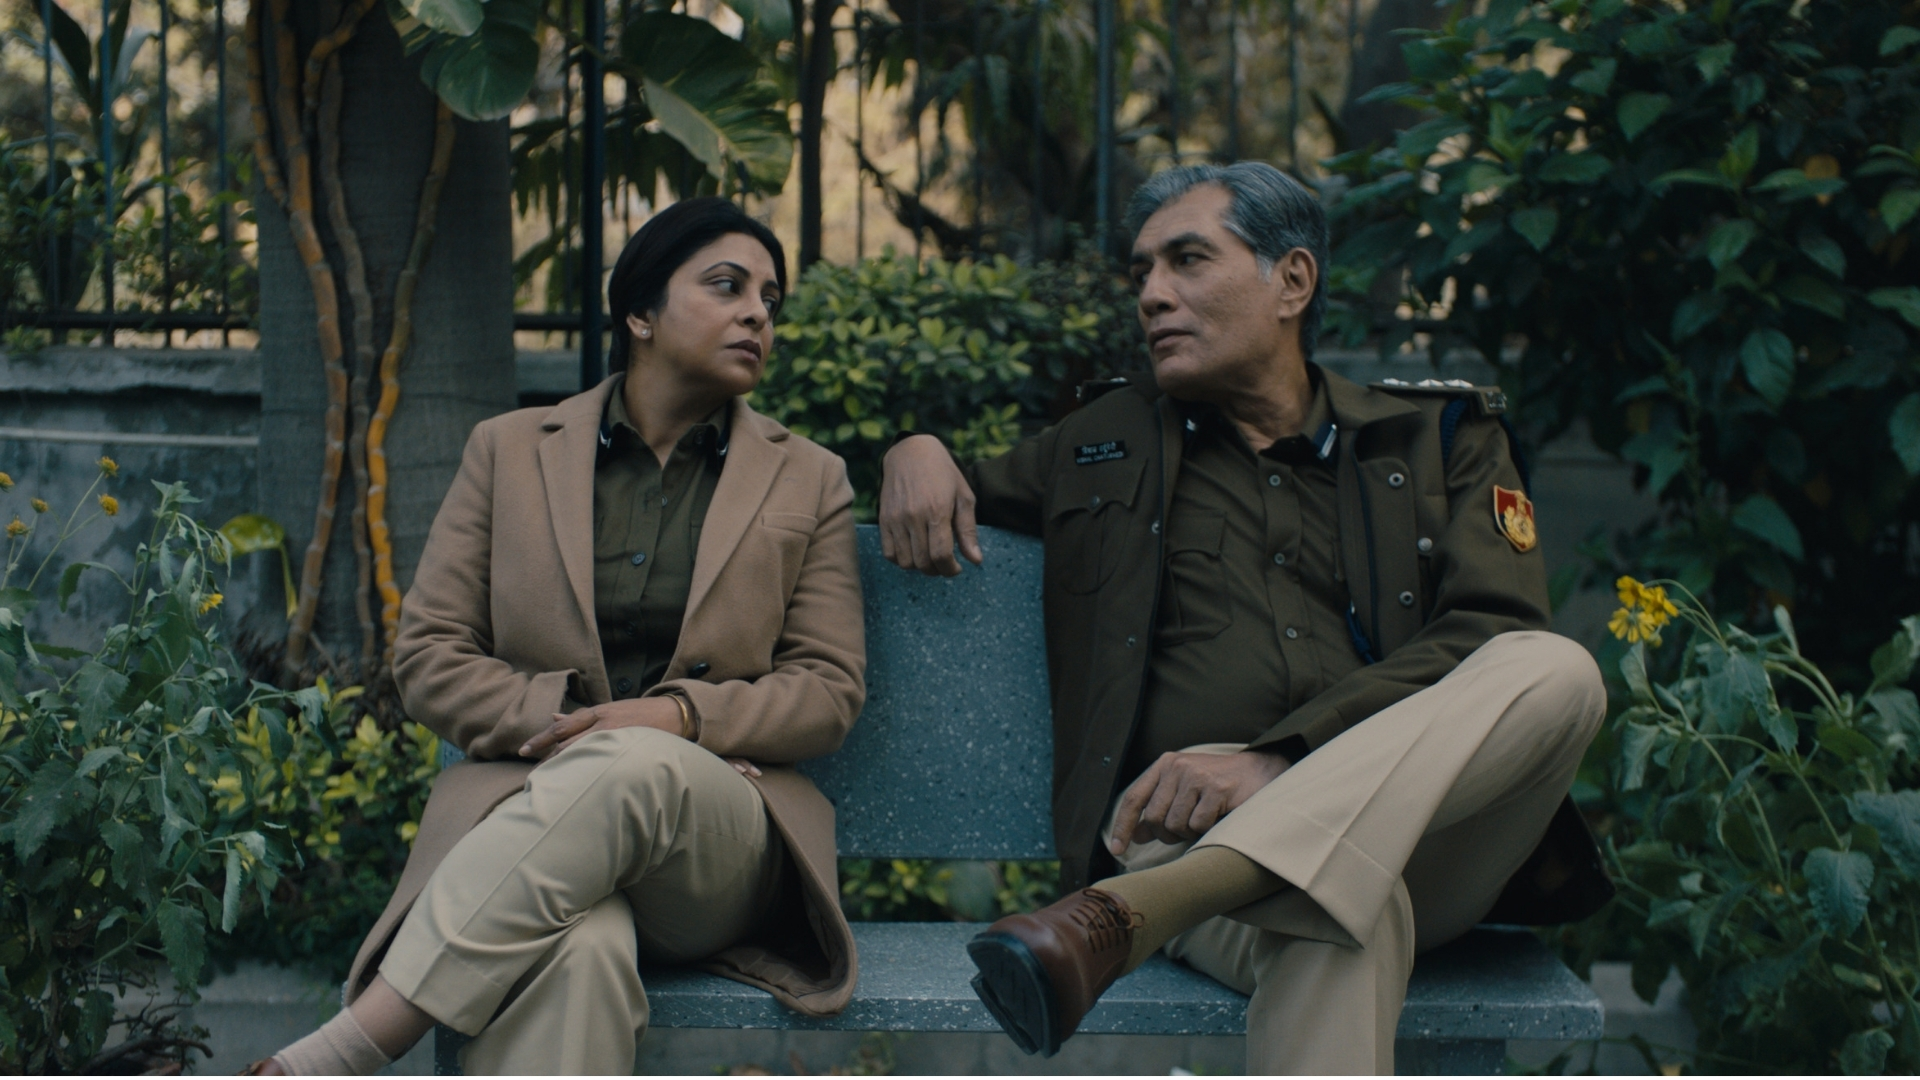 Review: Netflix's 'Delhi Crime' Is Immersive, Detailed, Acutely Affecting